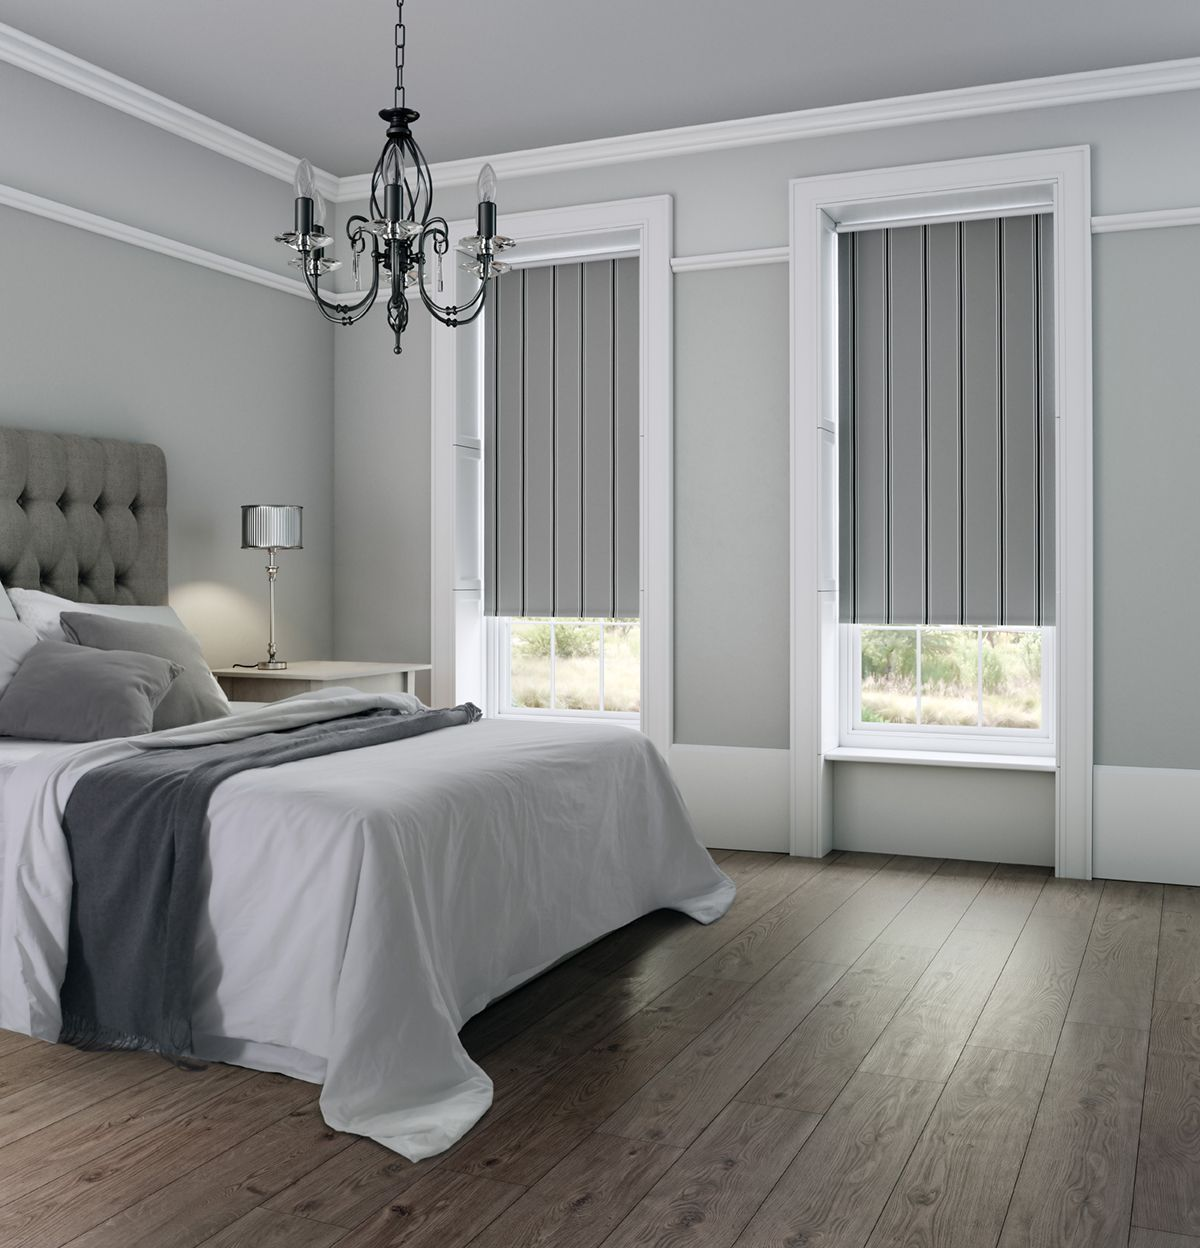 Stupendous useful tips brown blinds products blackout blinds how to